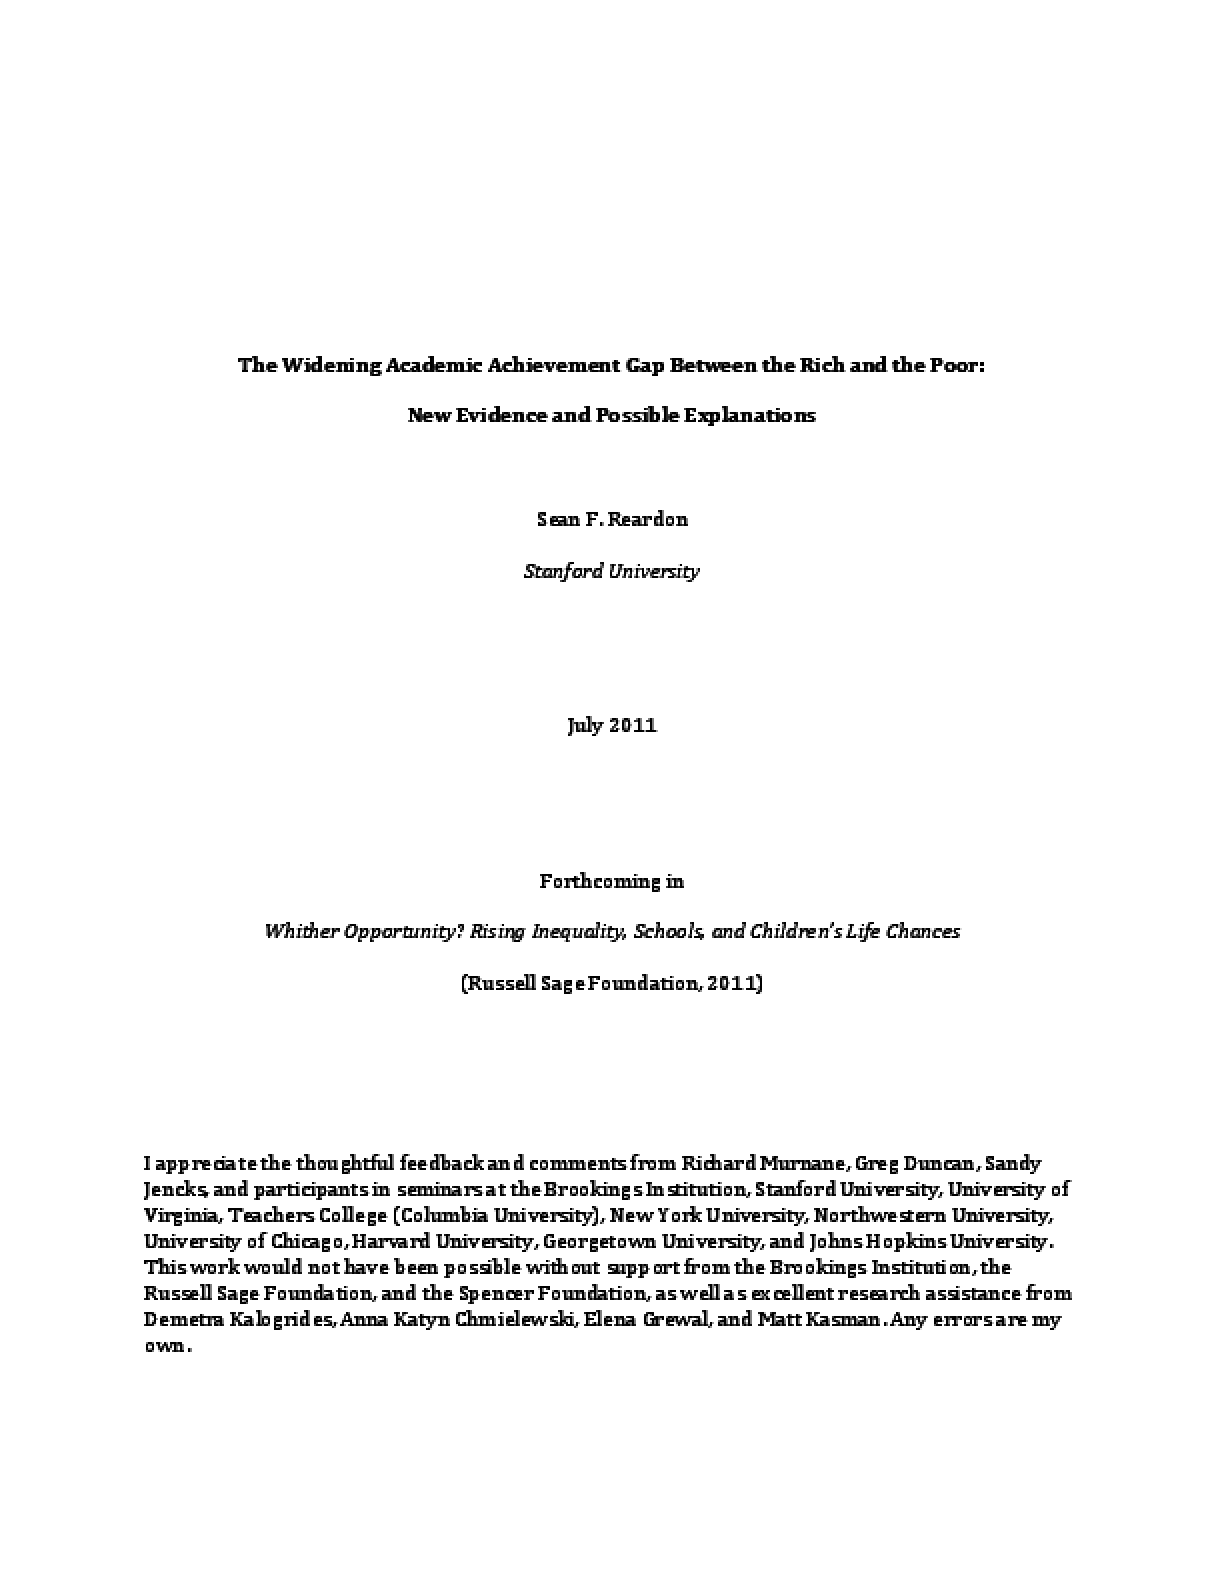 The Widening Academic Achievement Gap Between the Rich and the Poor: New Evidence and Possible Explanations